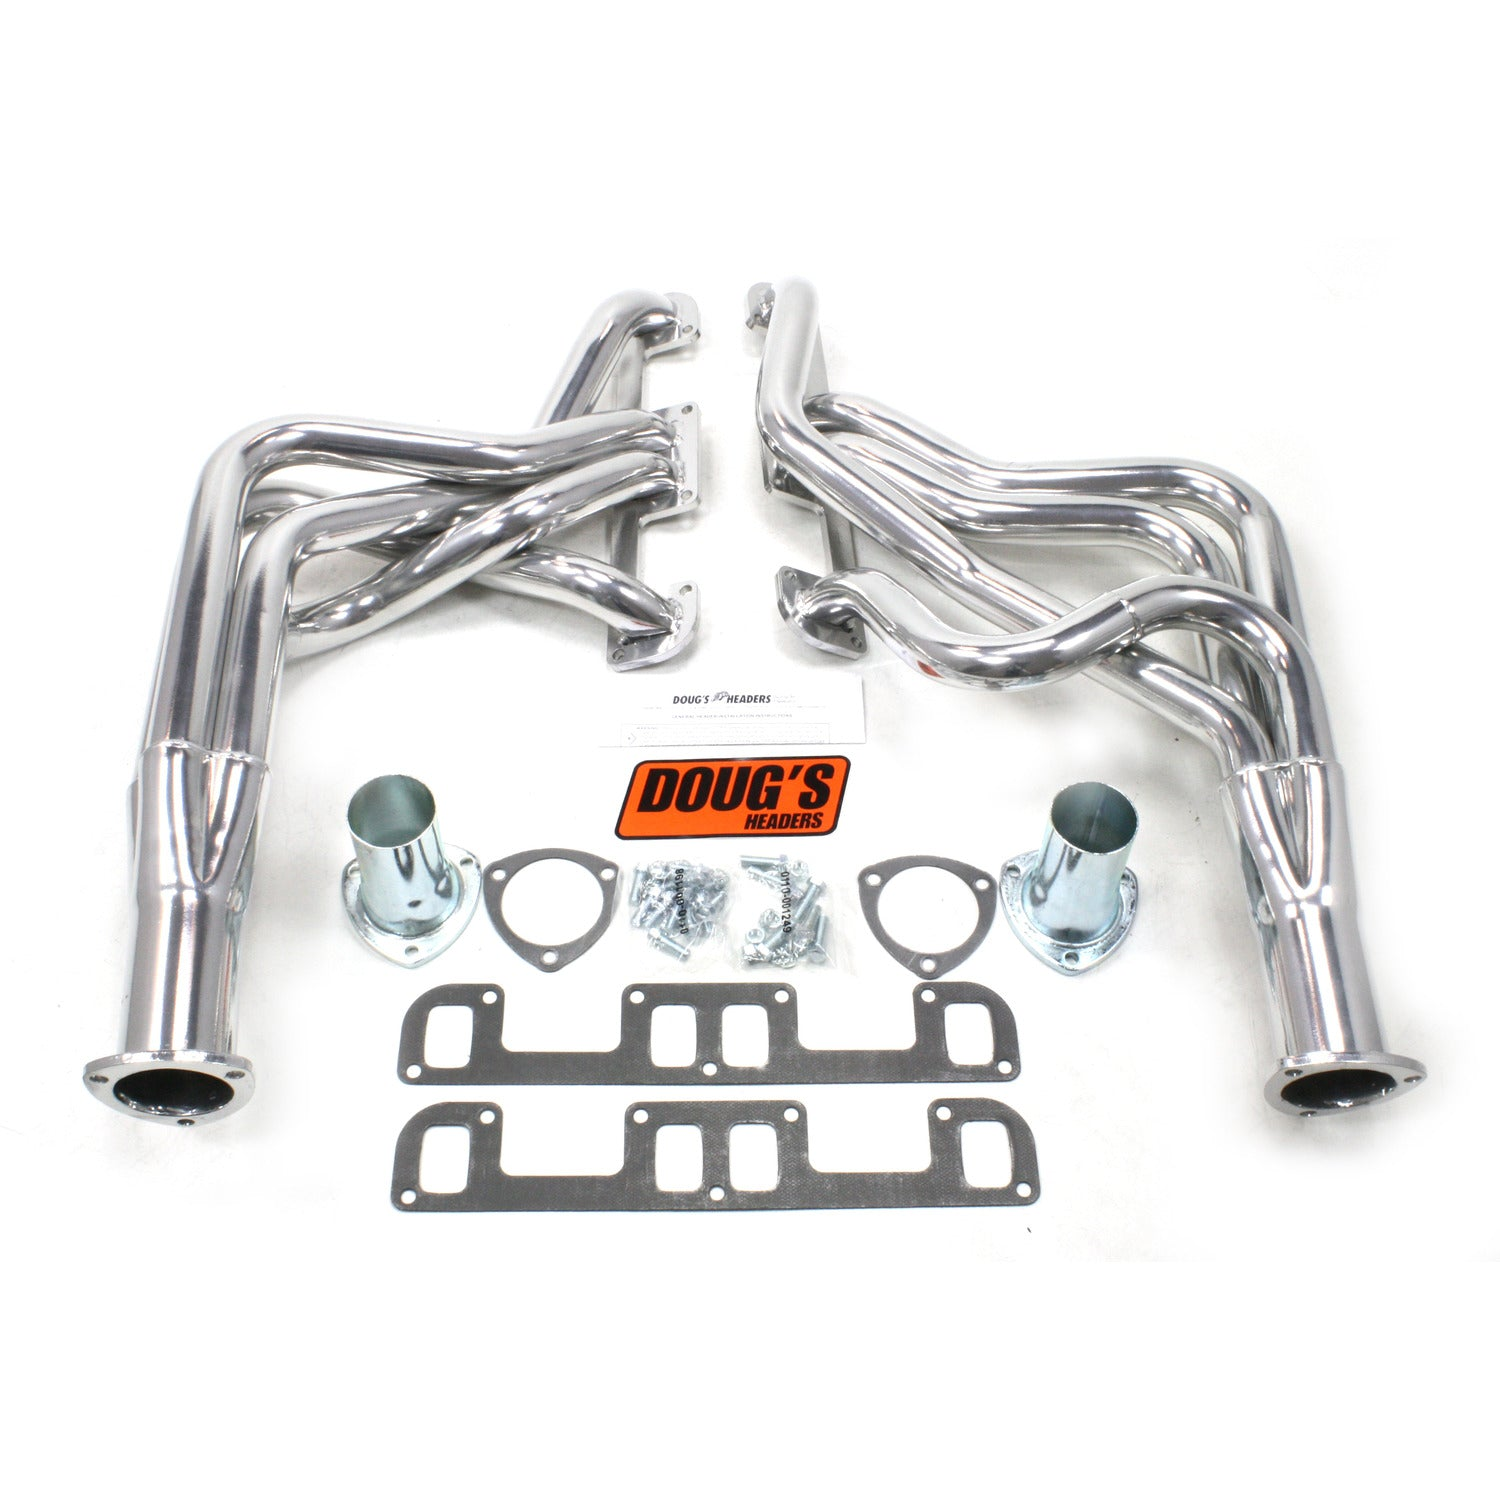 "Doug's Headers D200 1 3/4"" 4-Tube Full Length Header Buick Regal 350 68-72 Metallic Ceramic Coating"